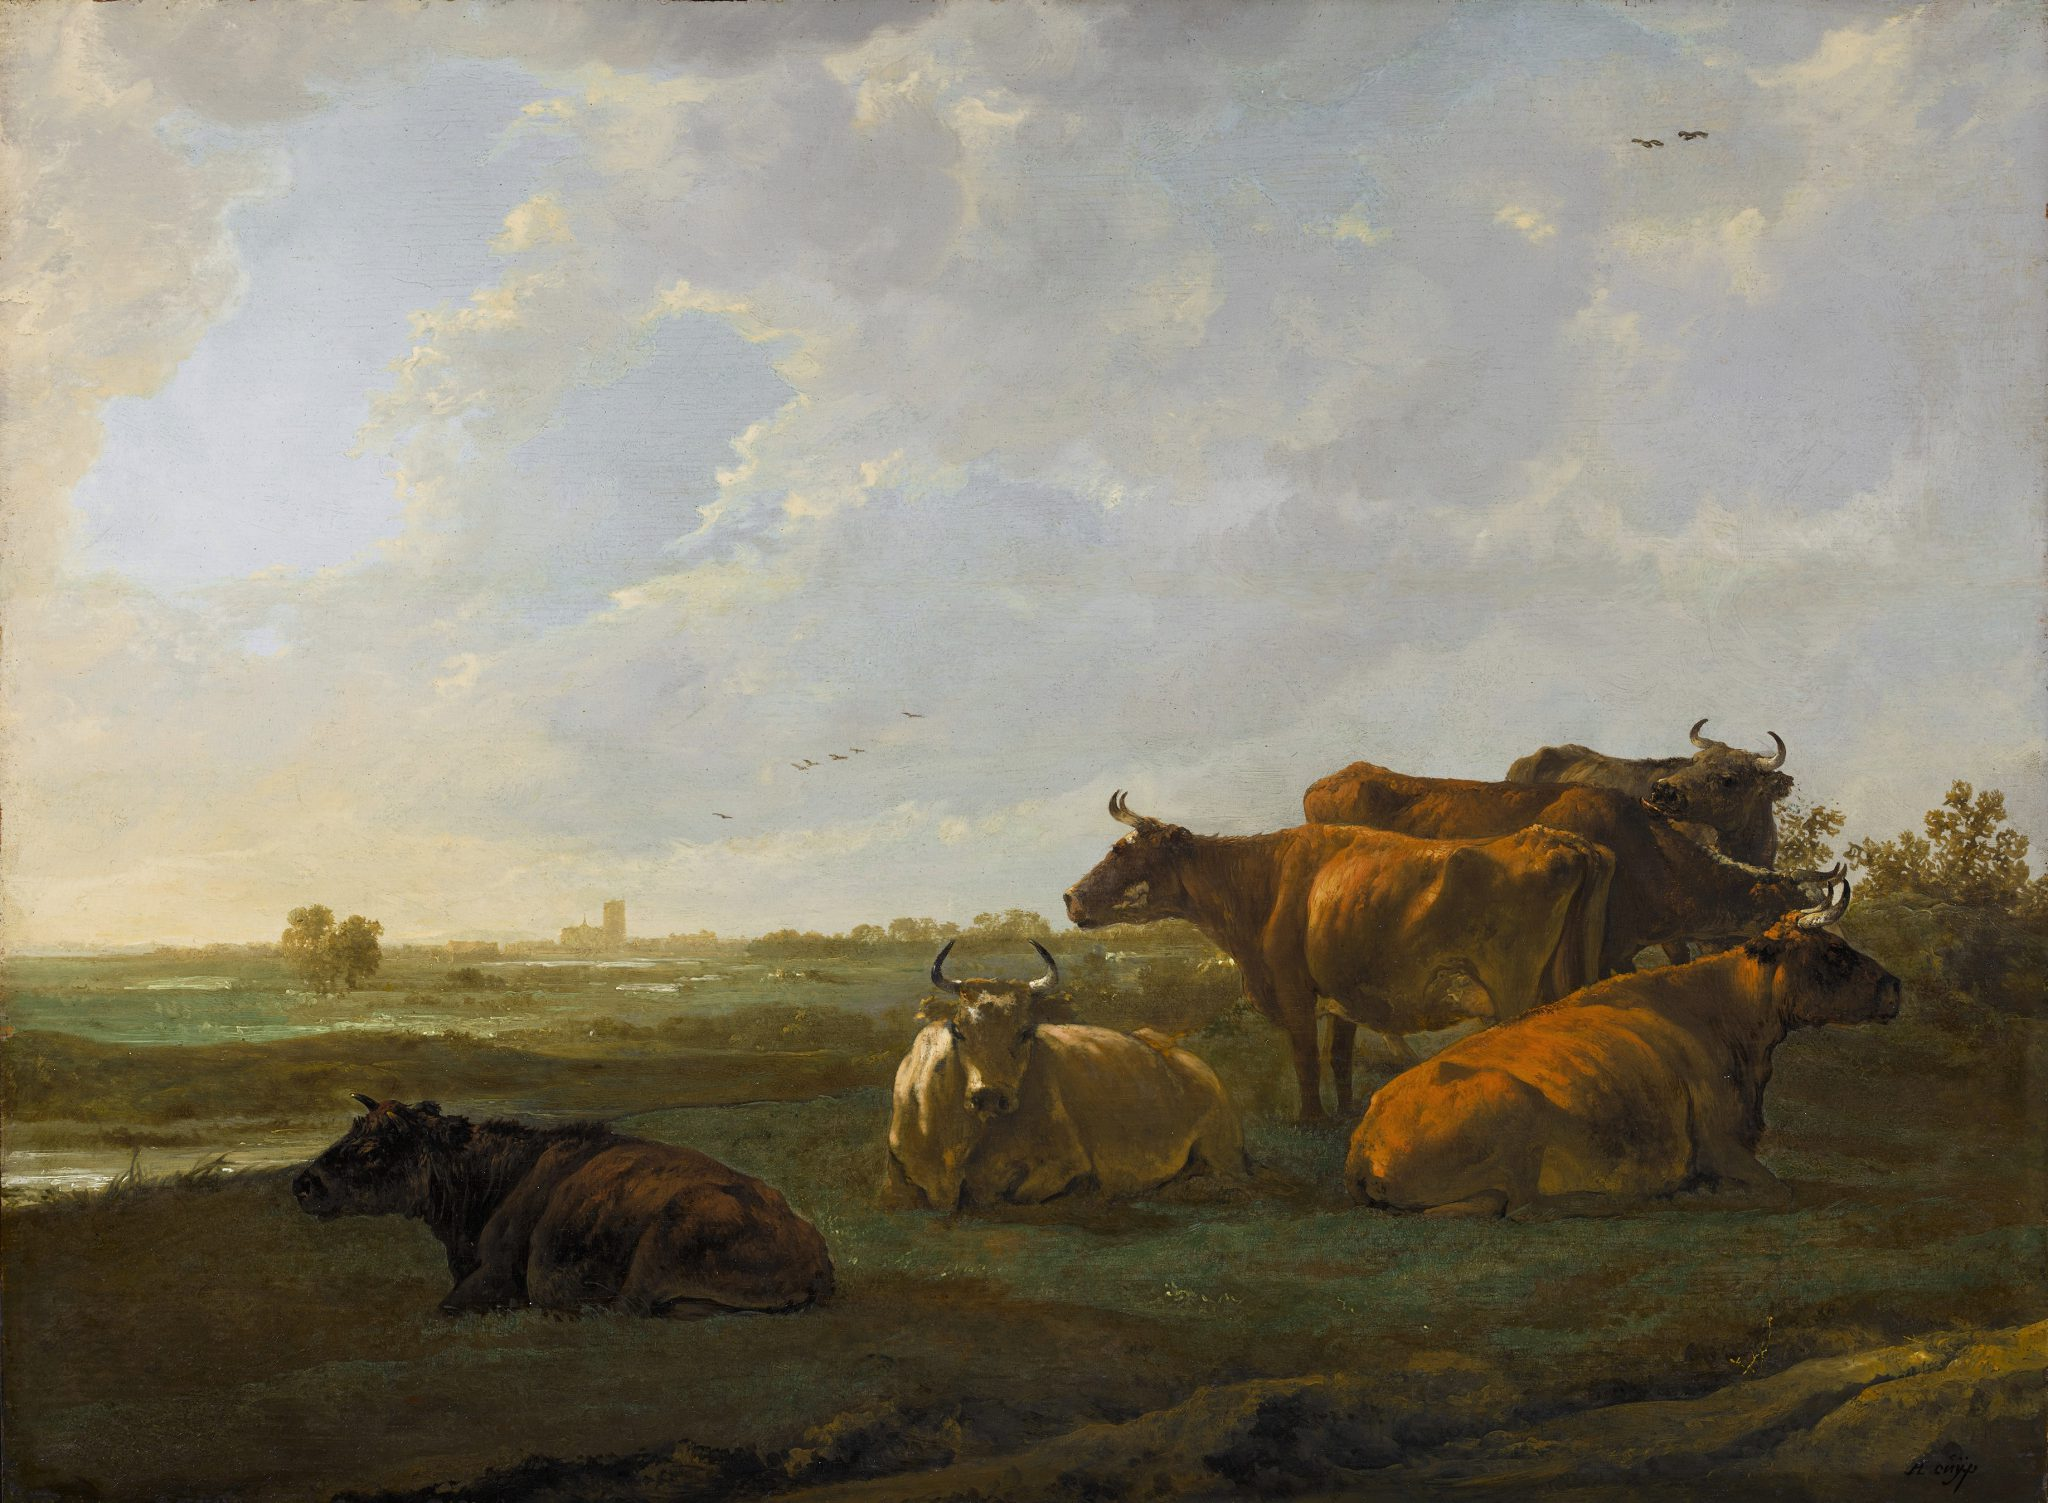 Landscape with cows, Dordrecht in the distance